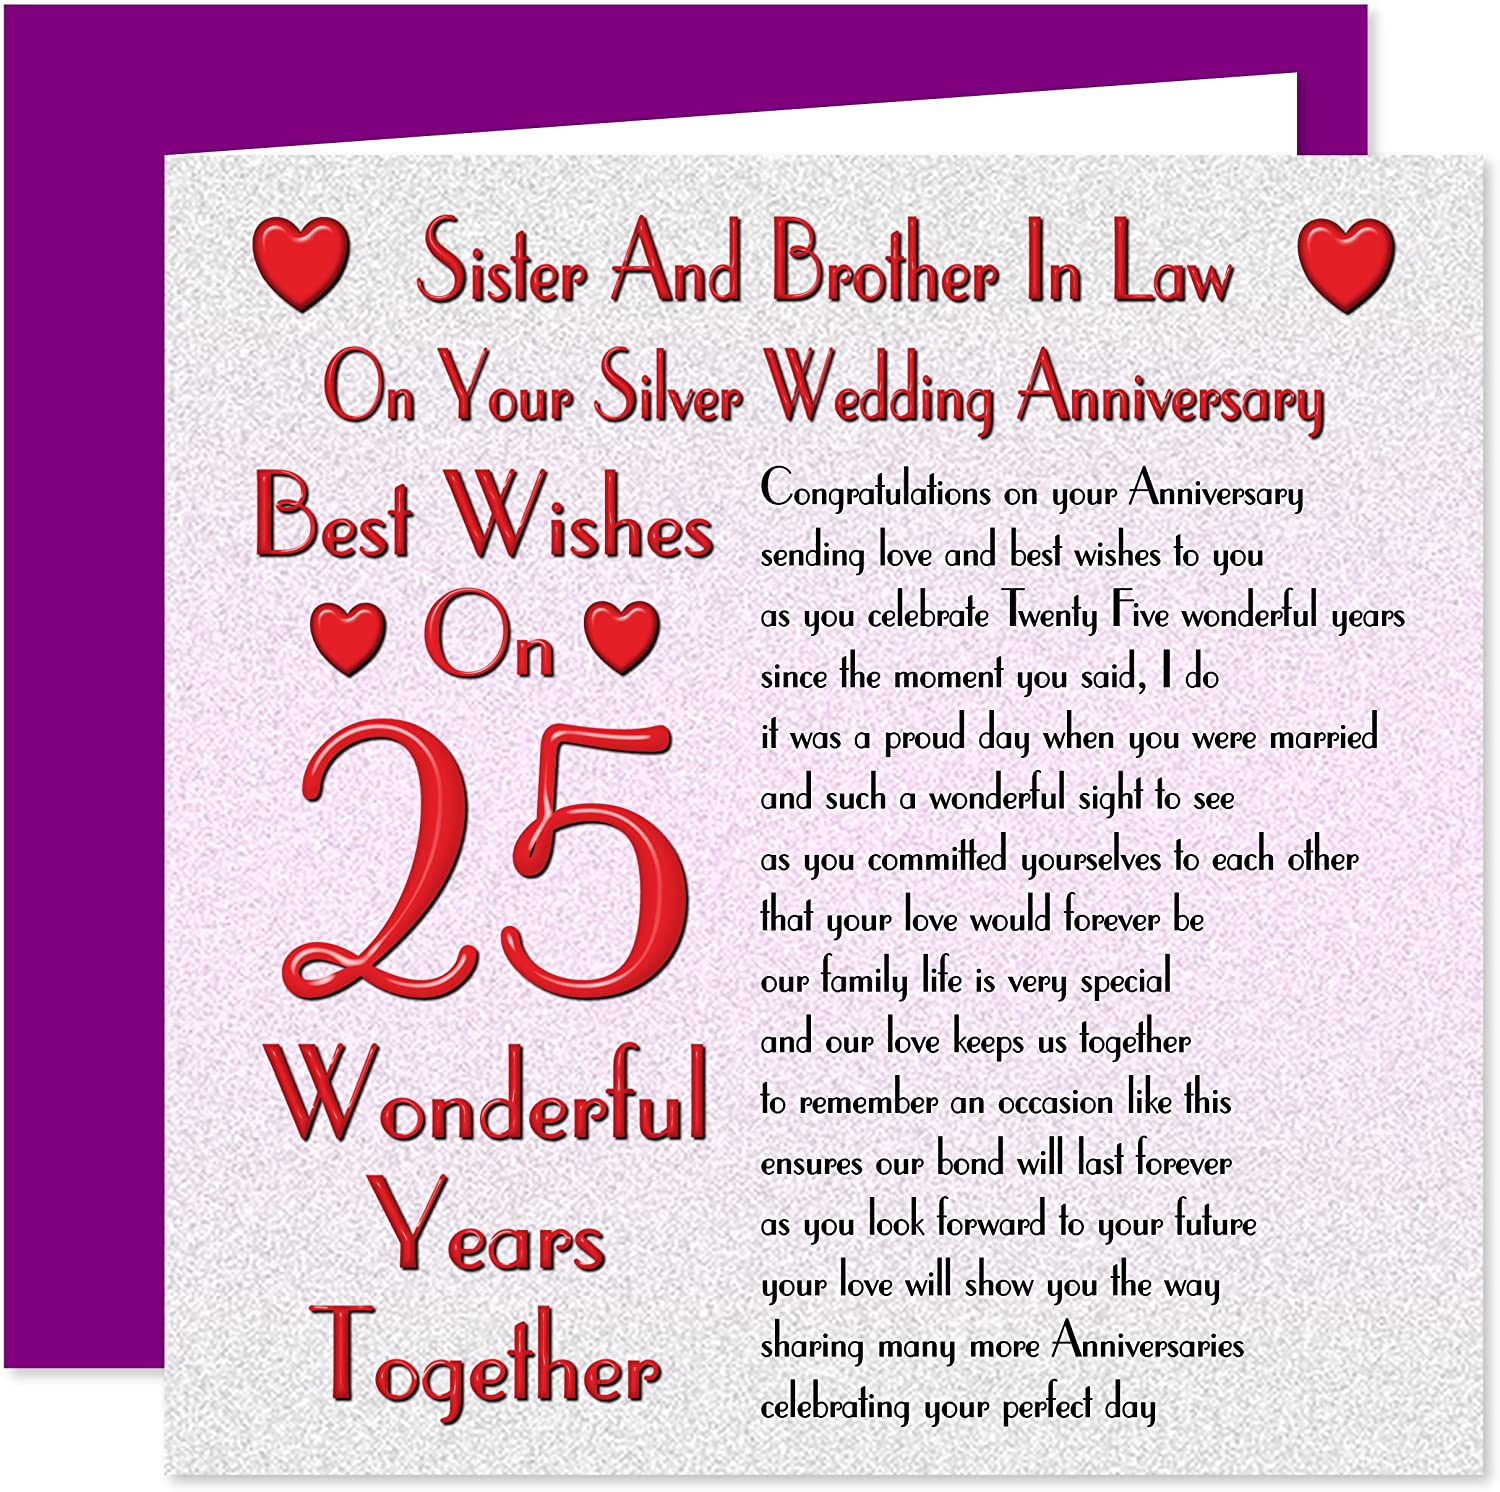 SISTER AND BROTHER IN LAW ANNIVERSARY HIGH QUALITY NICE VERSE